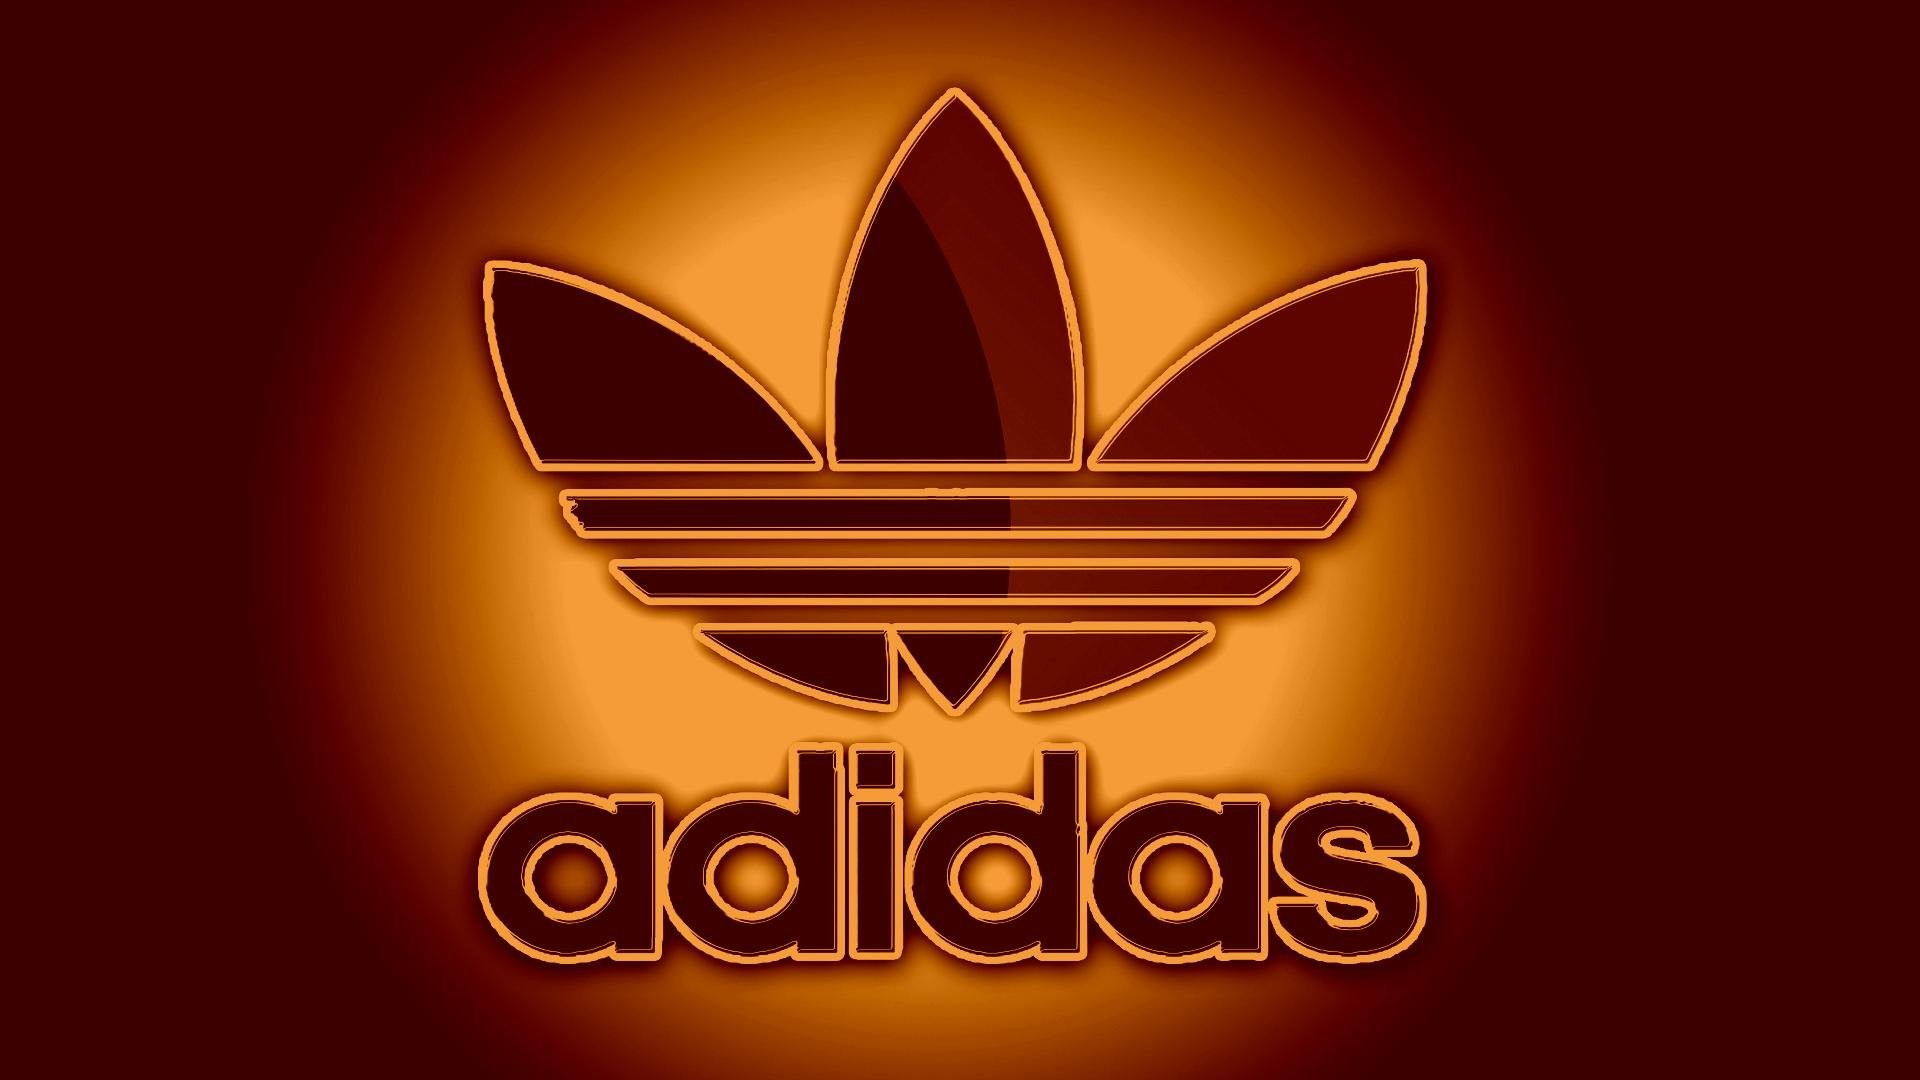 Adidas HD Wallpapers for Android - APK Download | 1080x1920